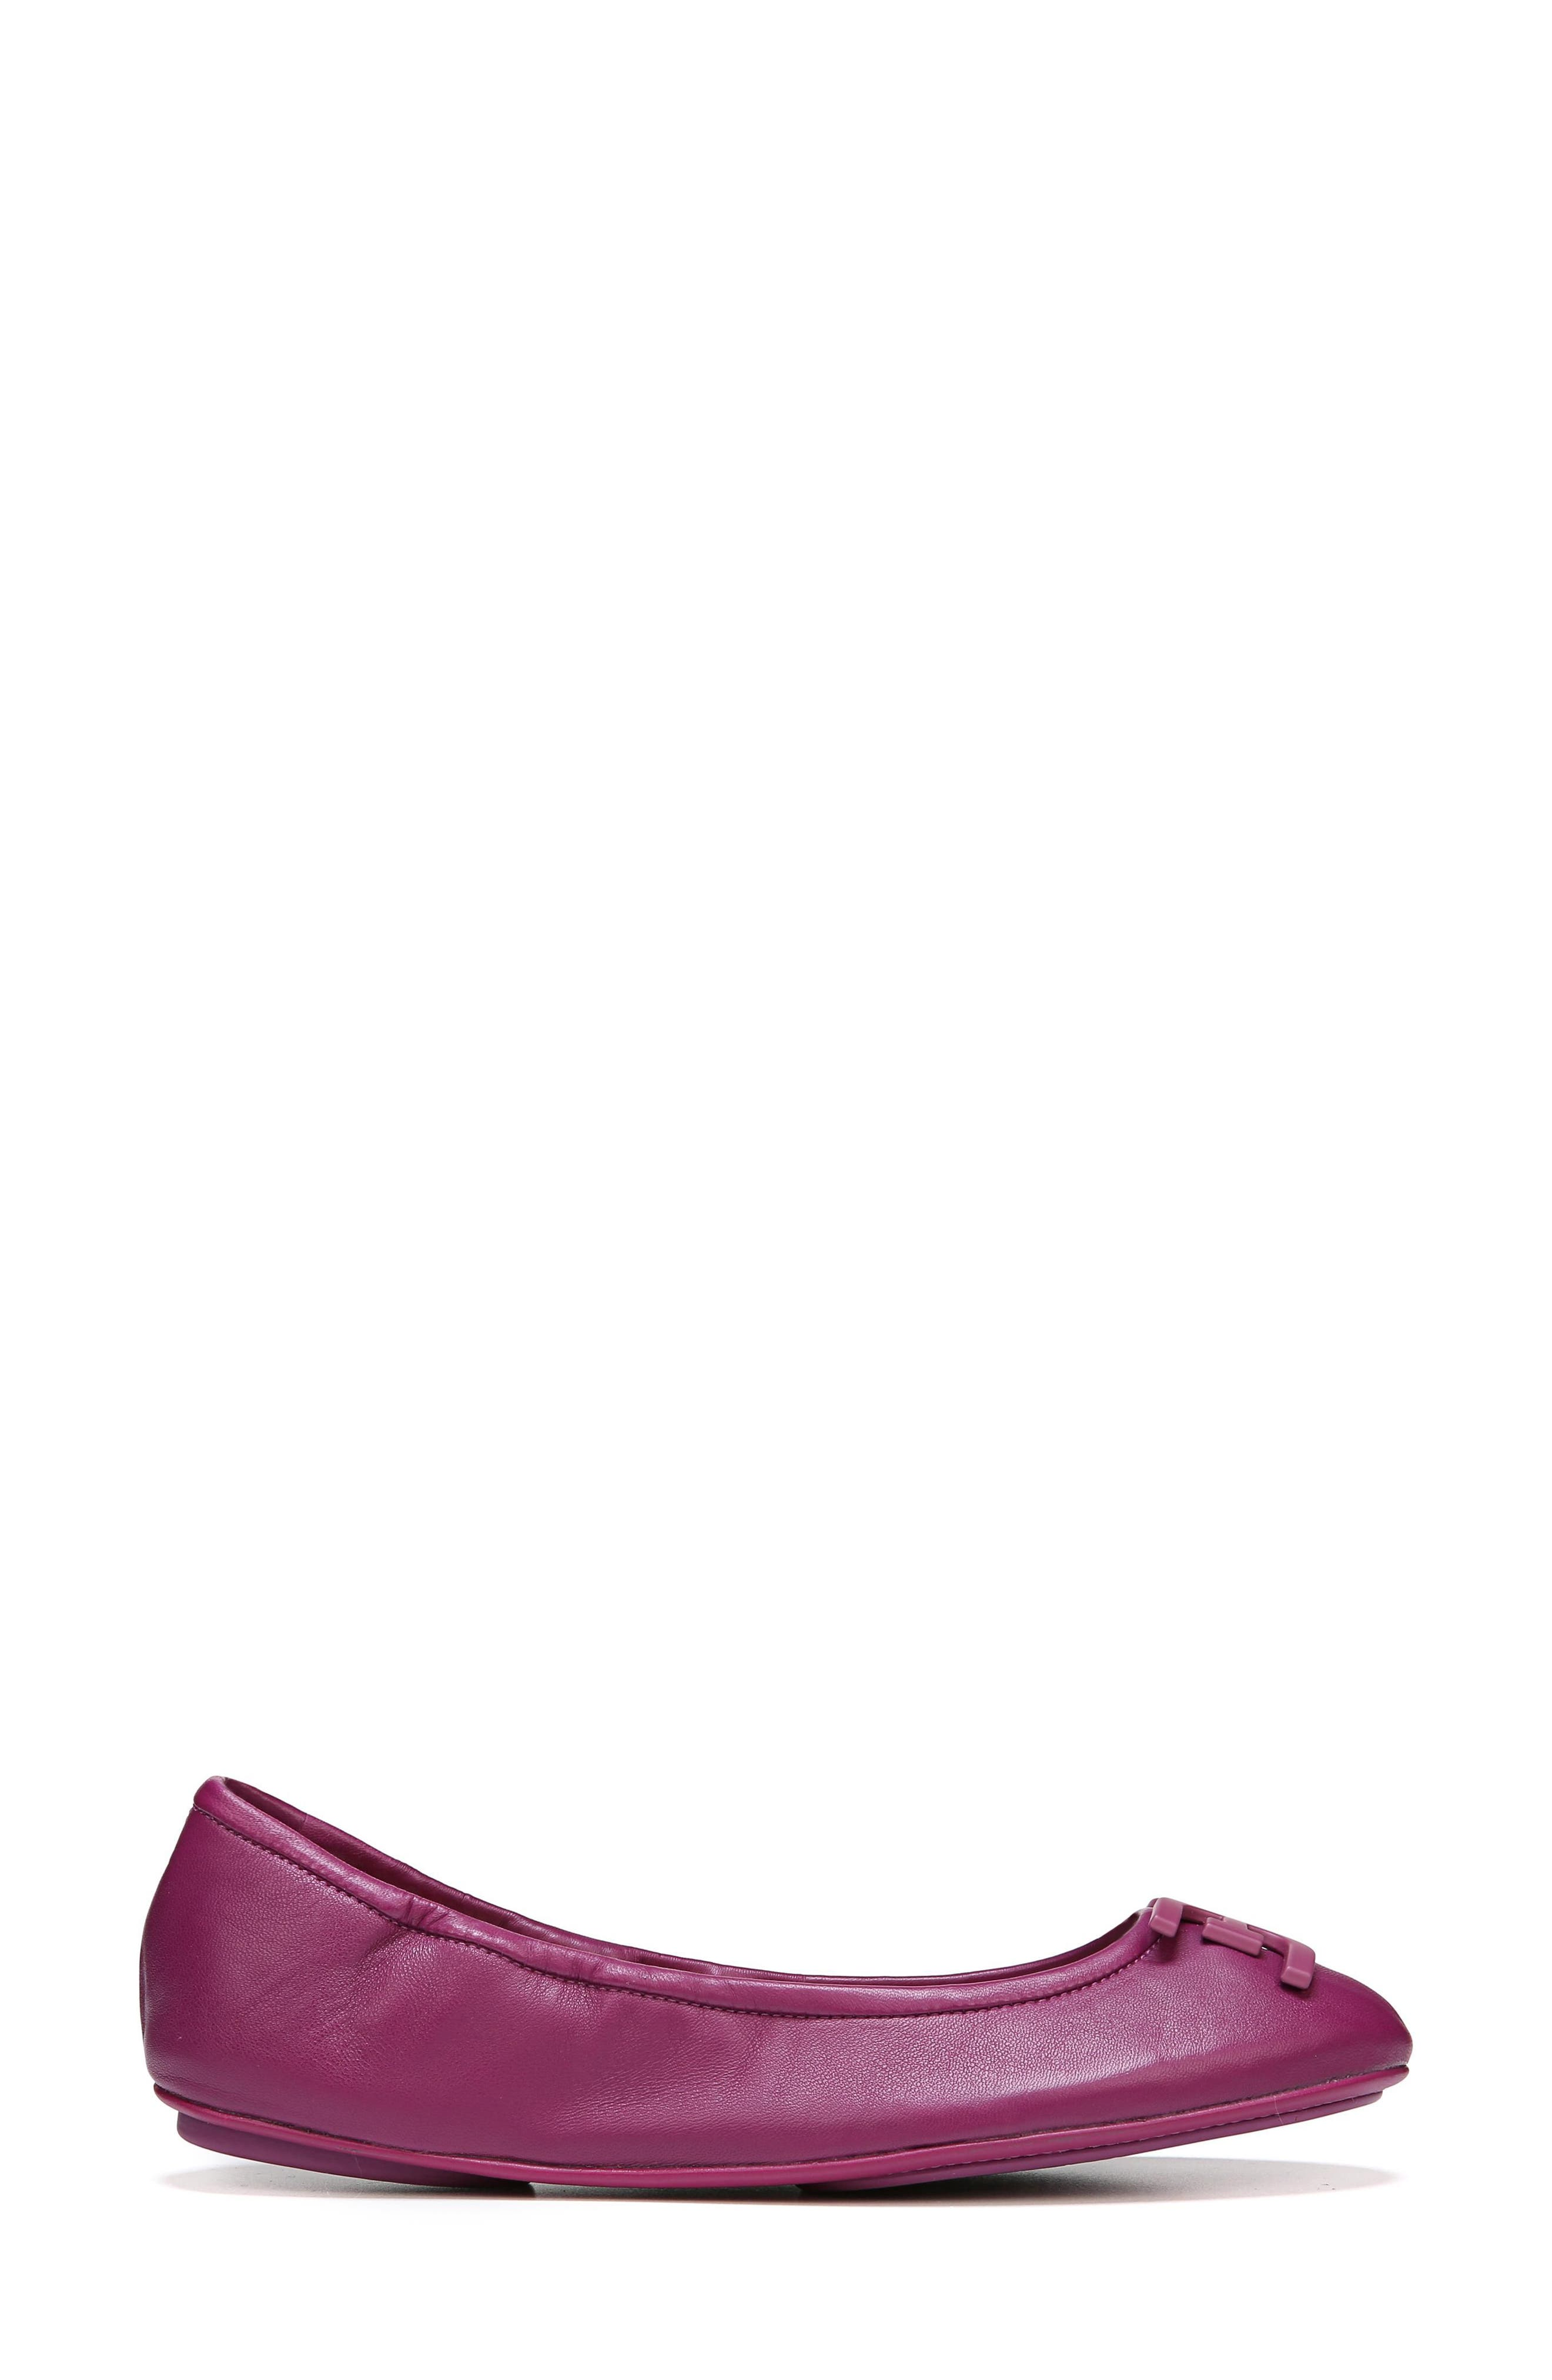 Florence Ballet Flat,                             Alternate thumbnail 6, color,                             Mulberry Pink Leather